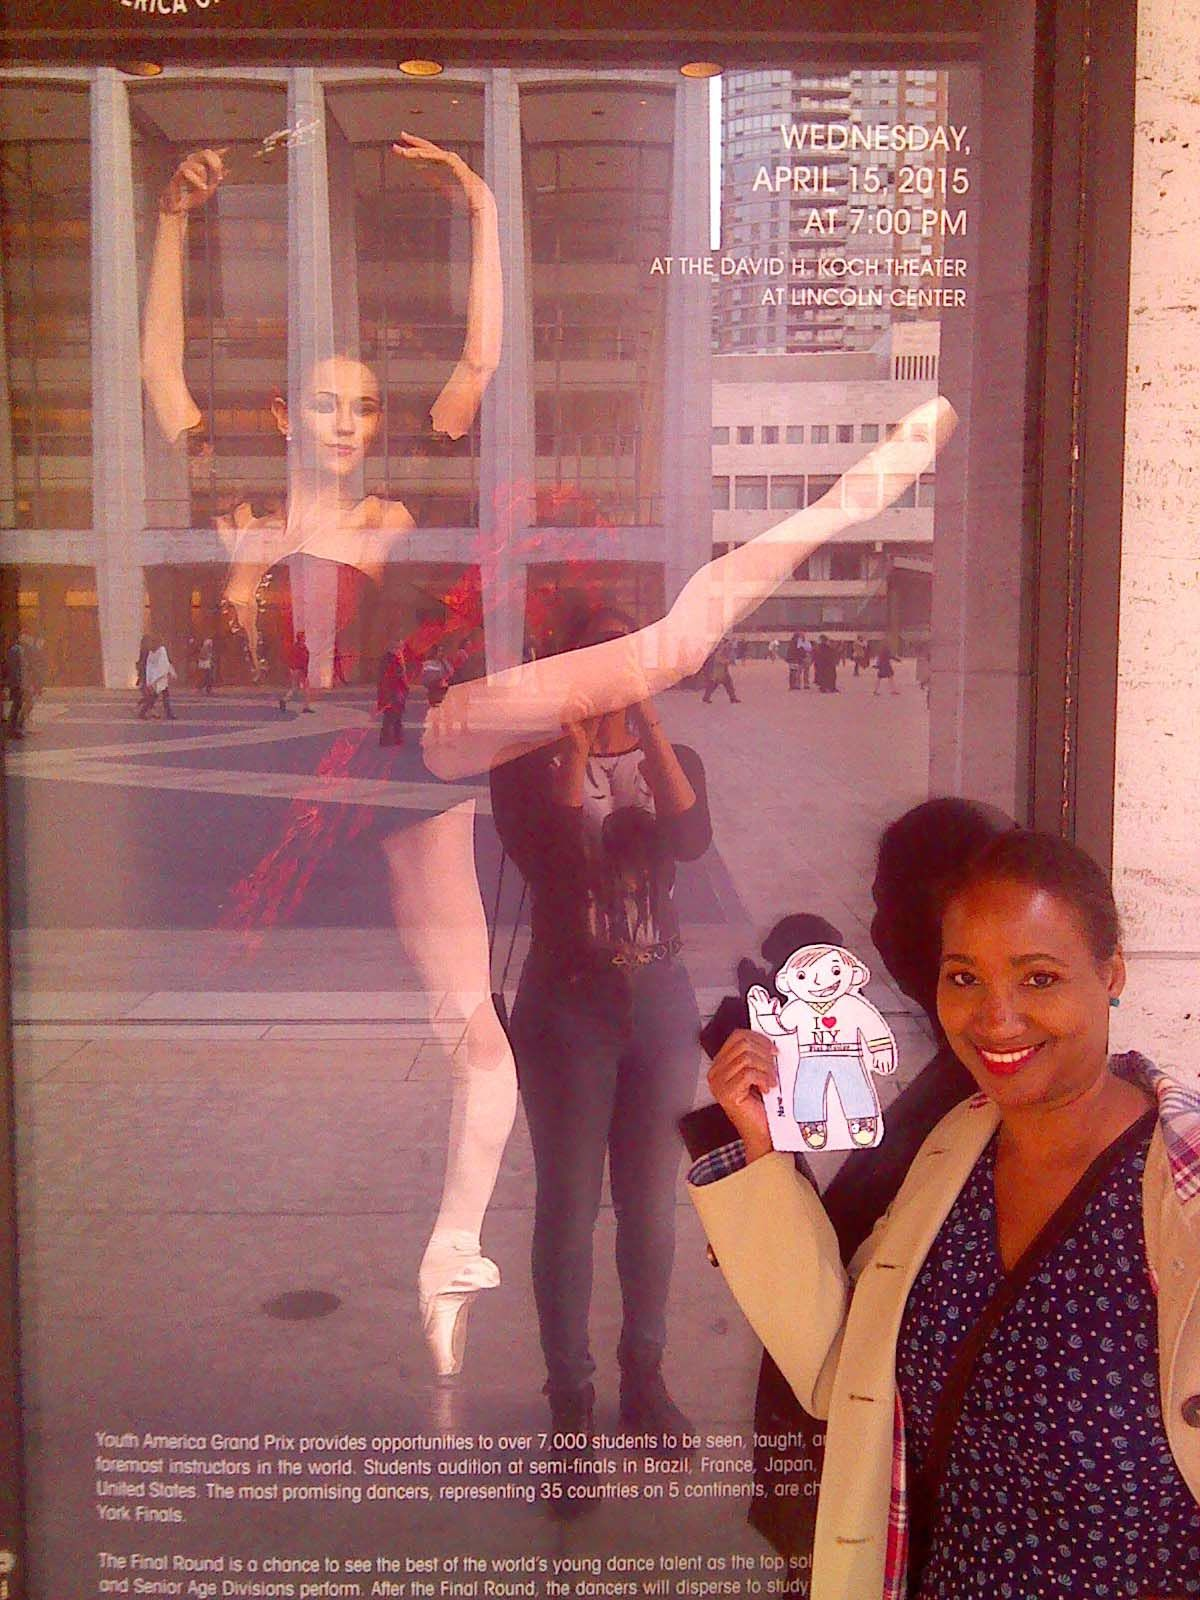 Stanley wants to buy tickets to the ballet at Lincoln Center.